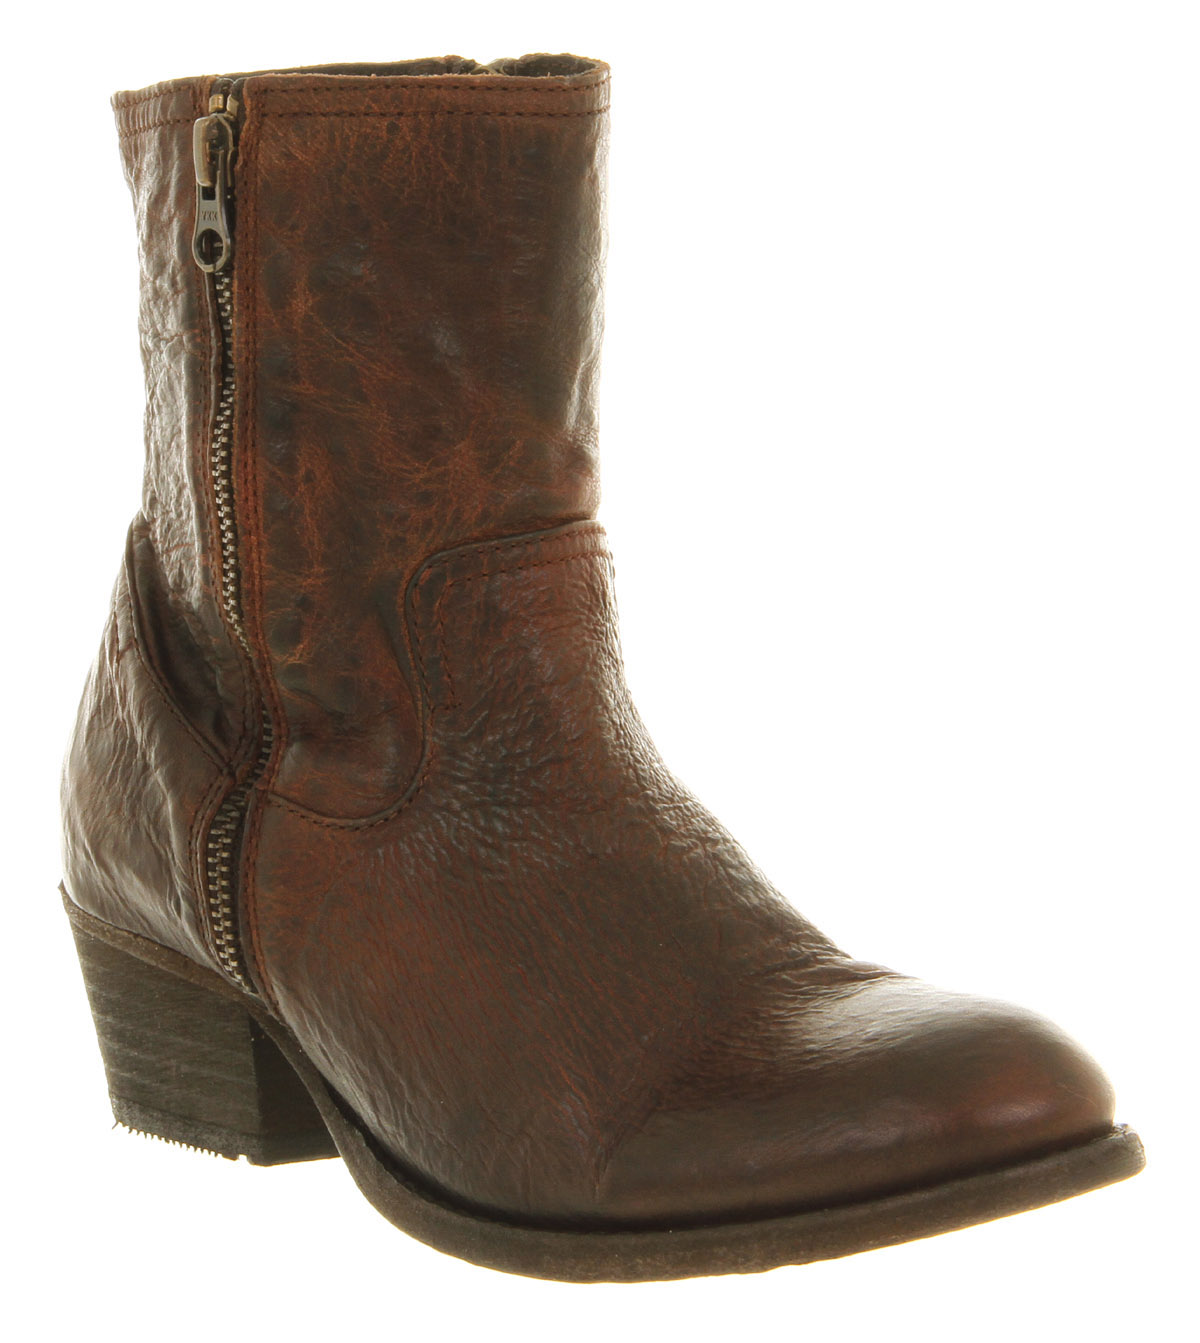 Womens-H-By-Hudson-Riley-Zip-Ankle-Boot-Tan-Leather-Boots-Shoes